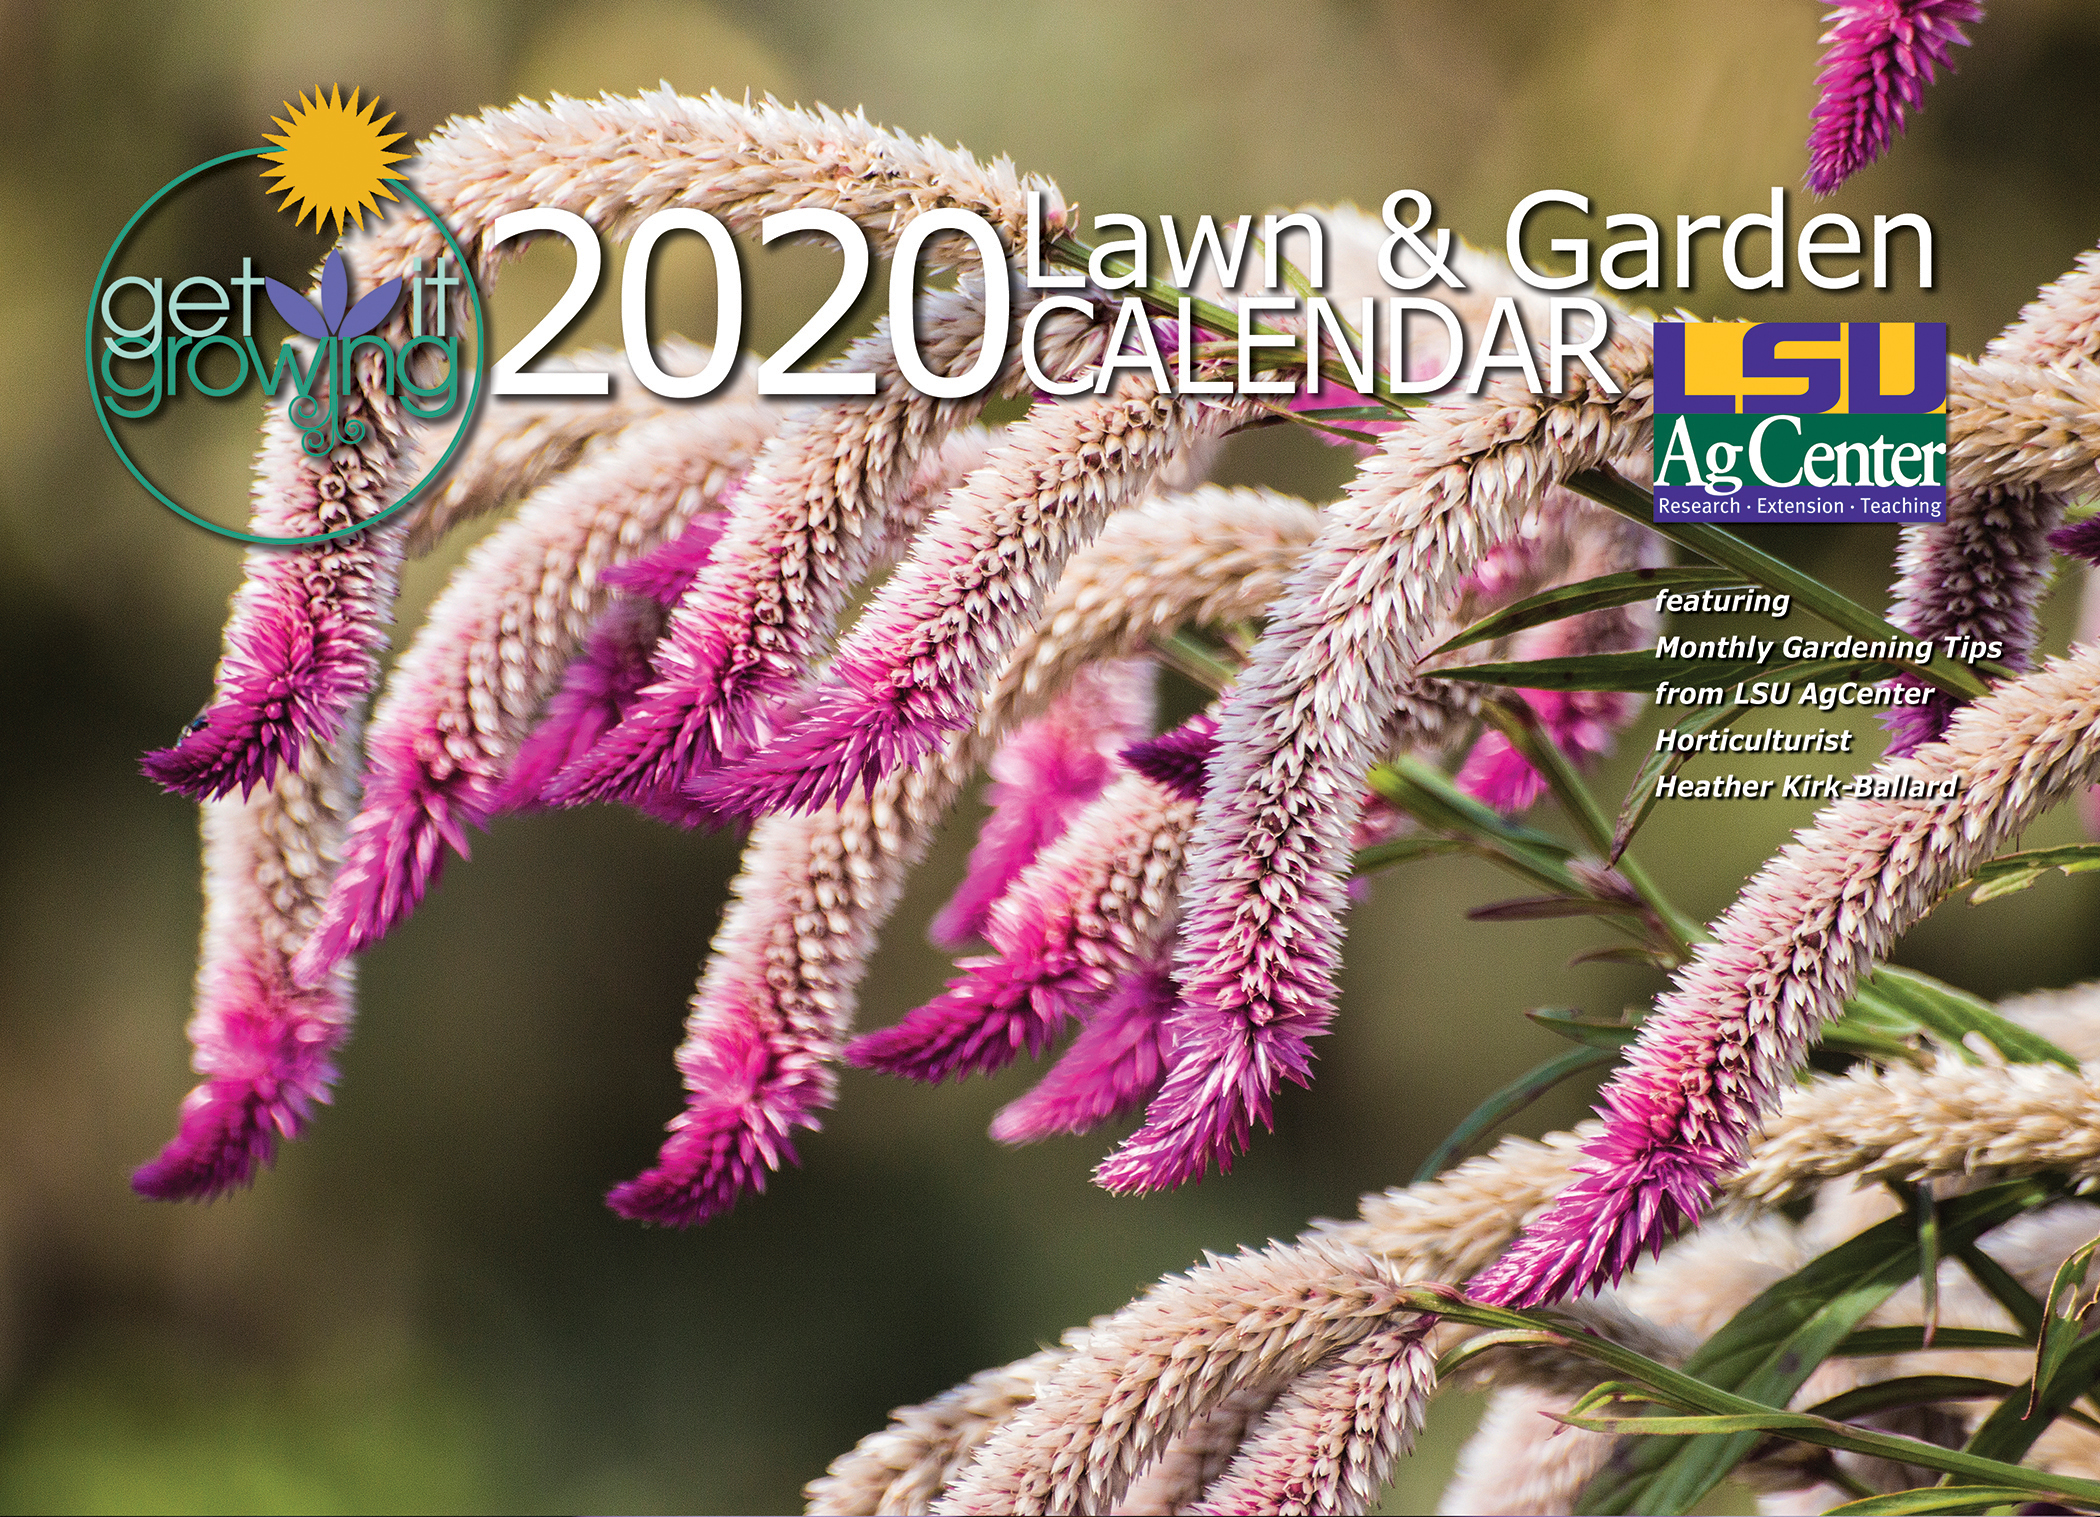 Lsu Calendar 2021 LSU AgCenter issues call for entries for 2021 Get it Growing calendar